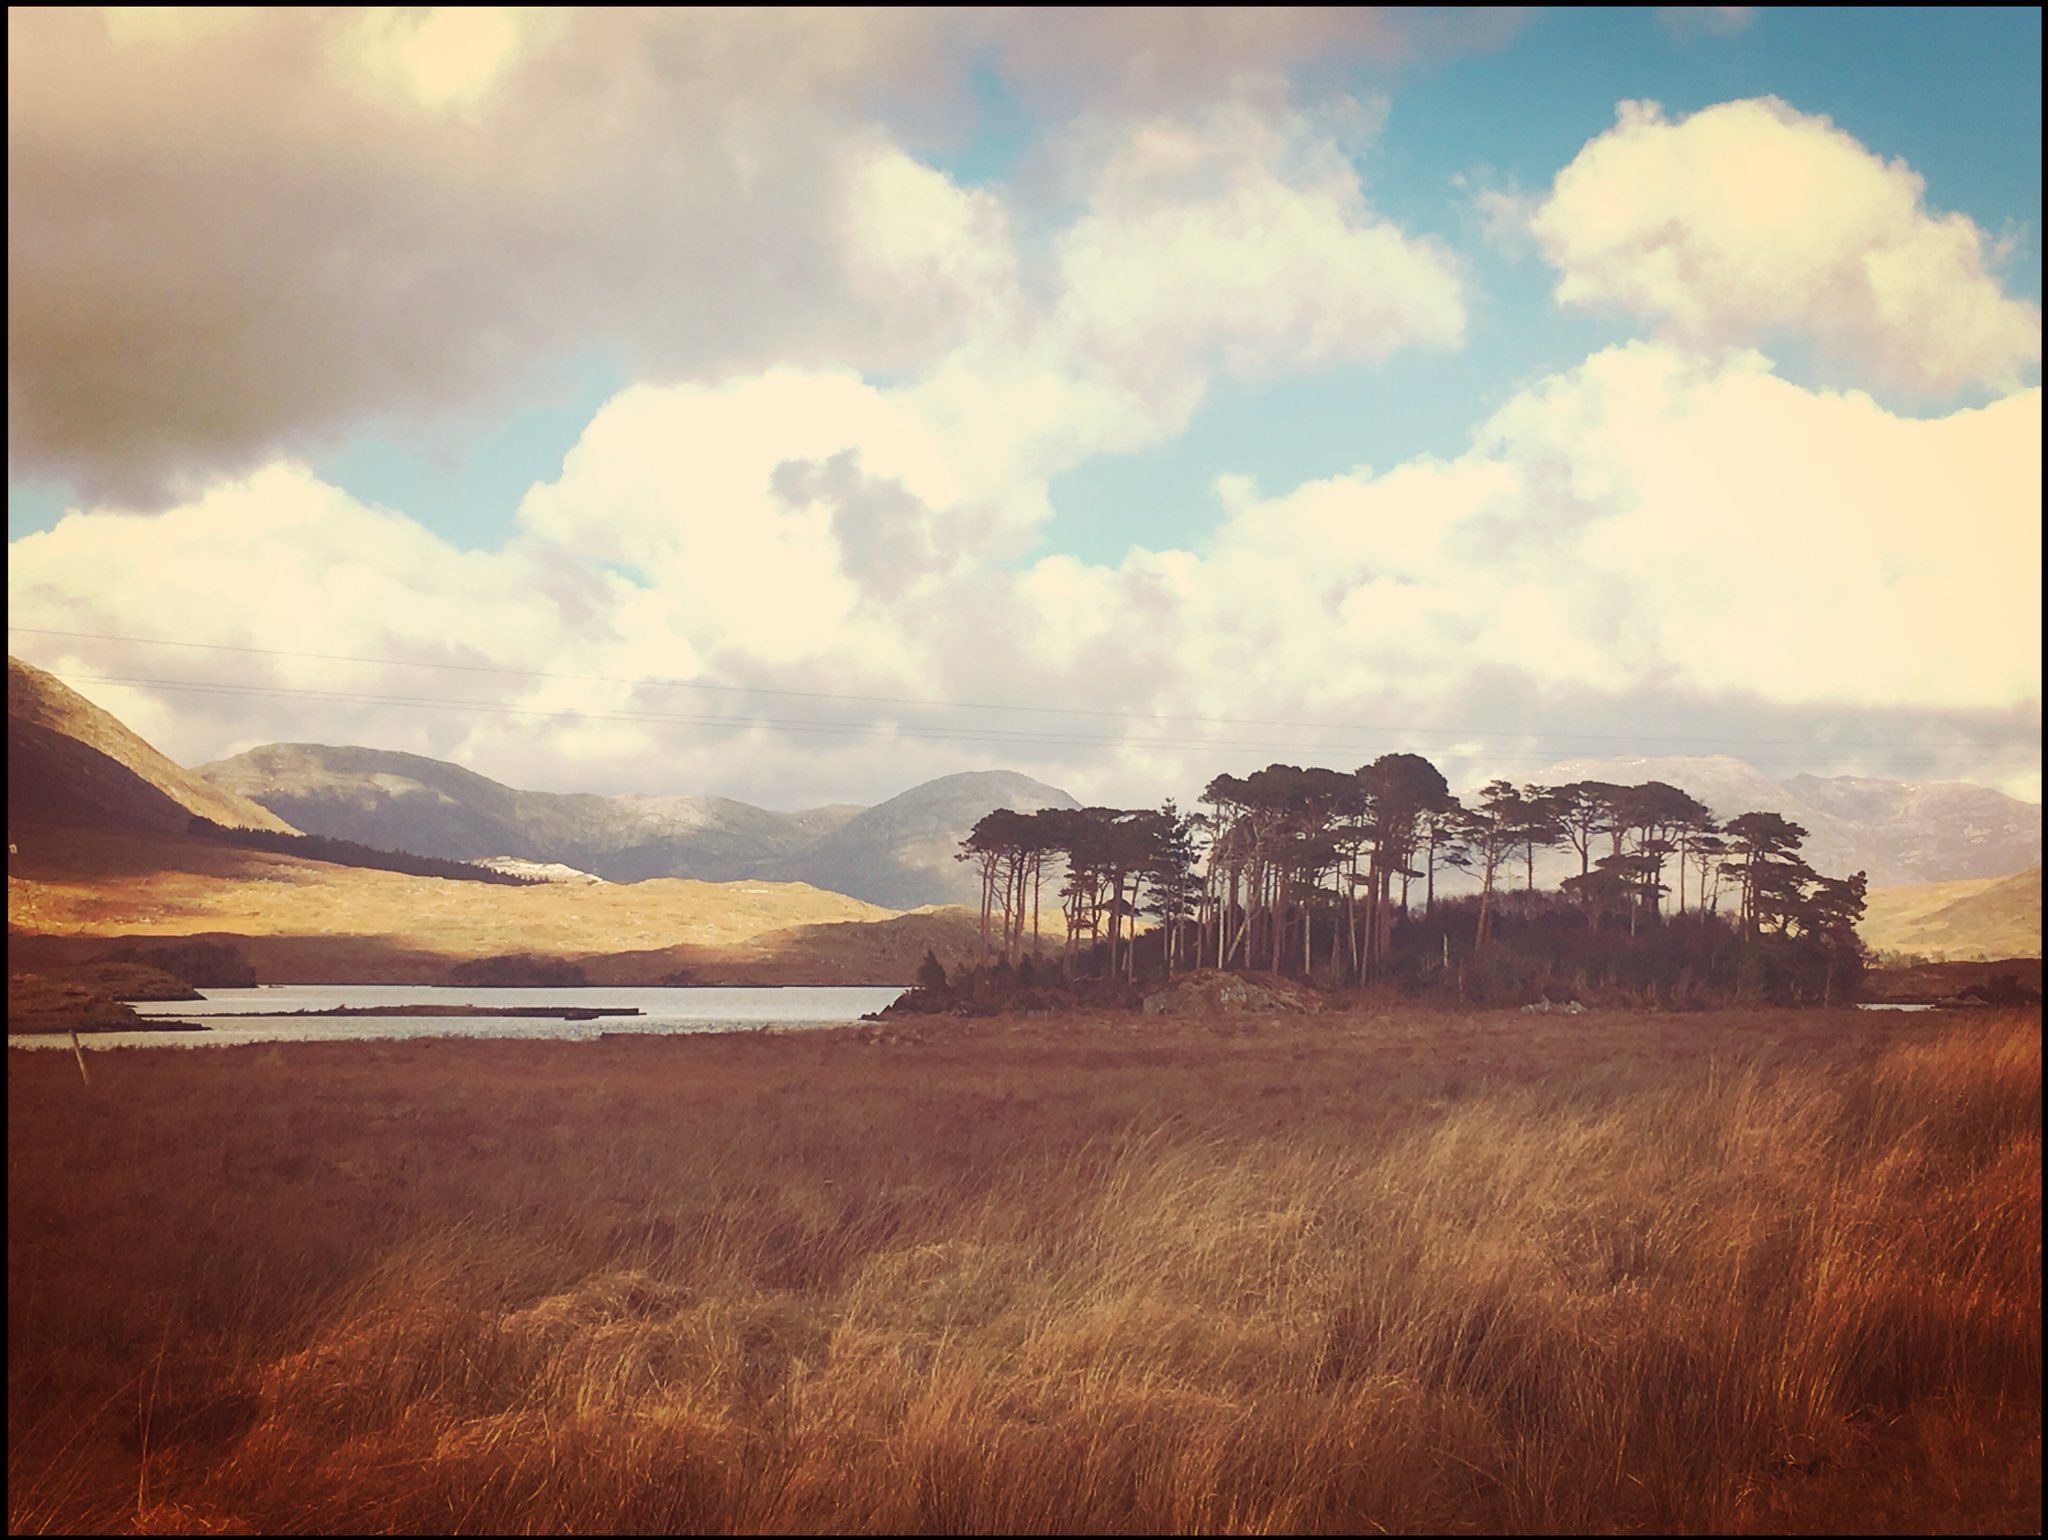 Spent a wonderful day meandering through the wild ruggedness that is #Connemara #Galway https://t.co/SvCXVw0tkF